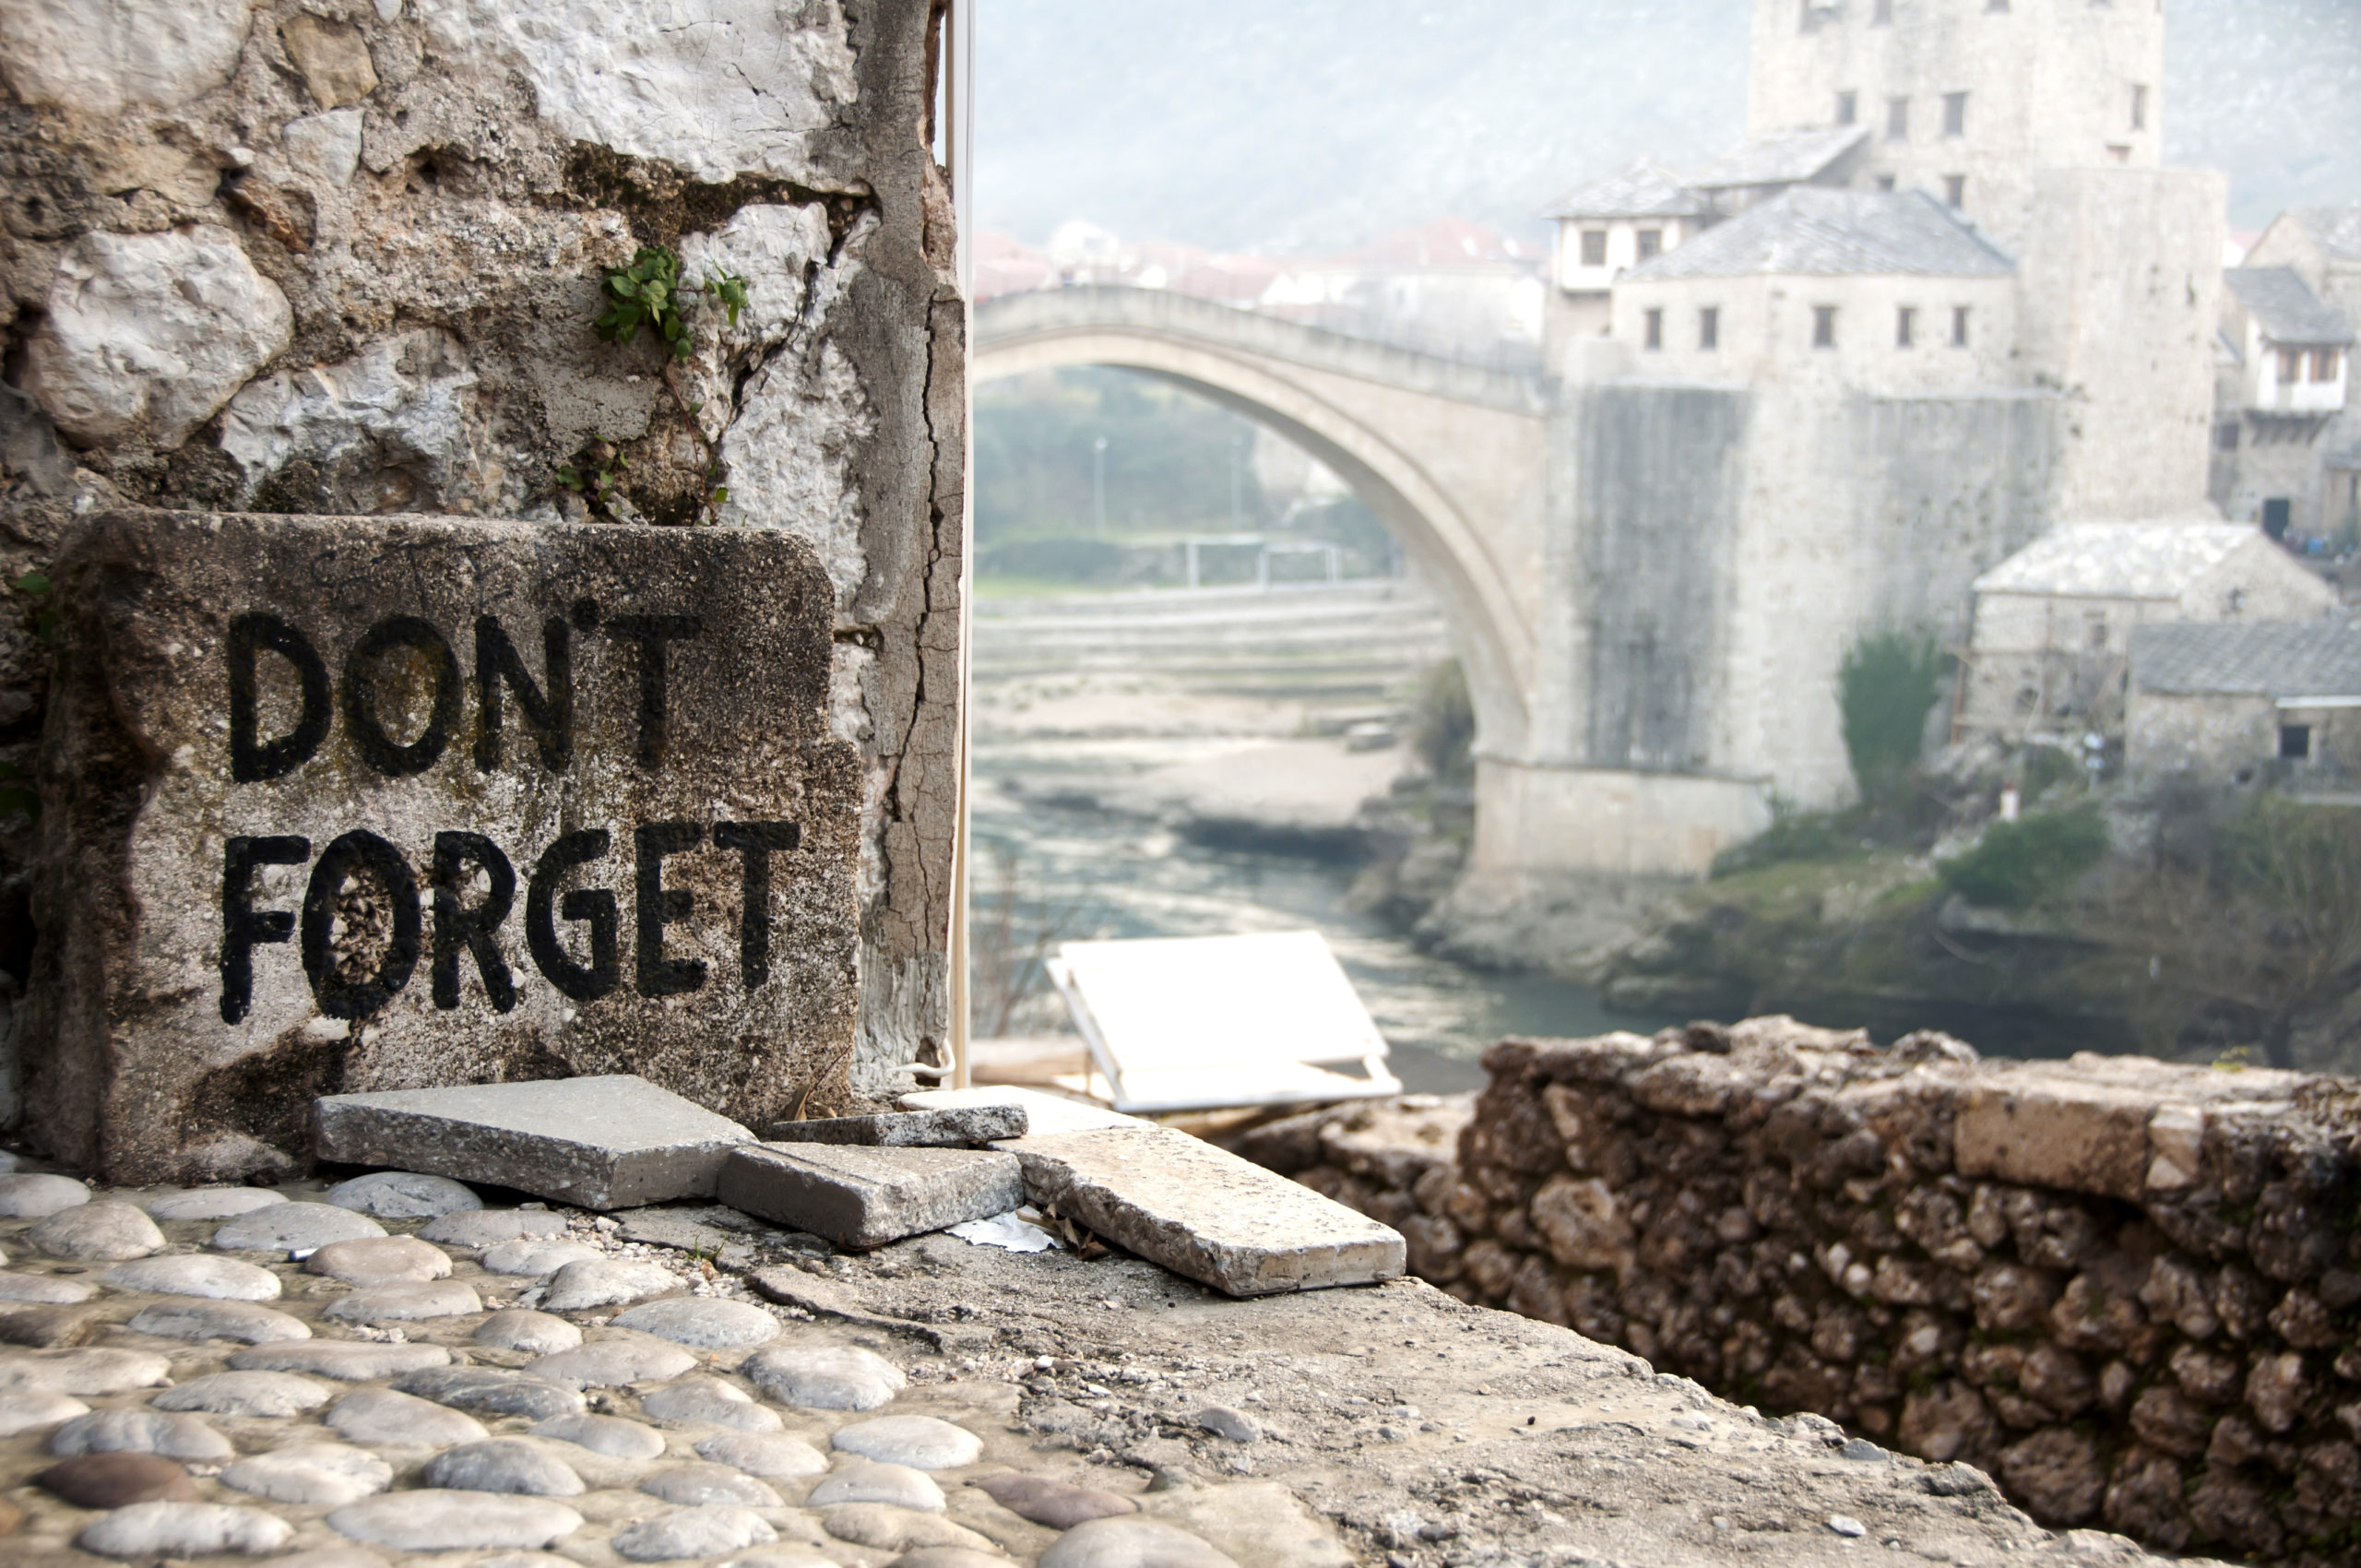 The ancient bridge in Mostar in Bosnia was blown up during the war.